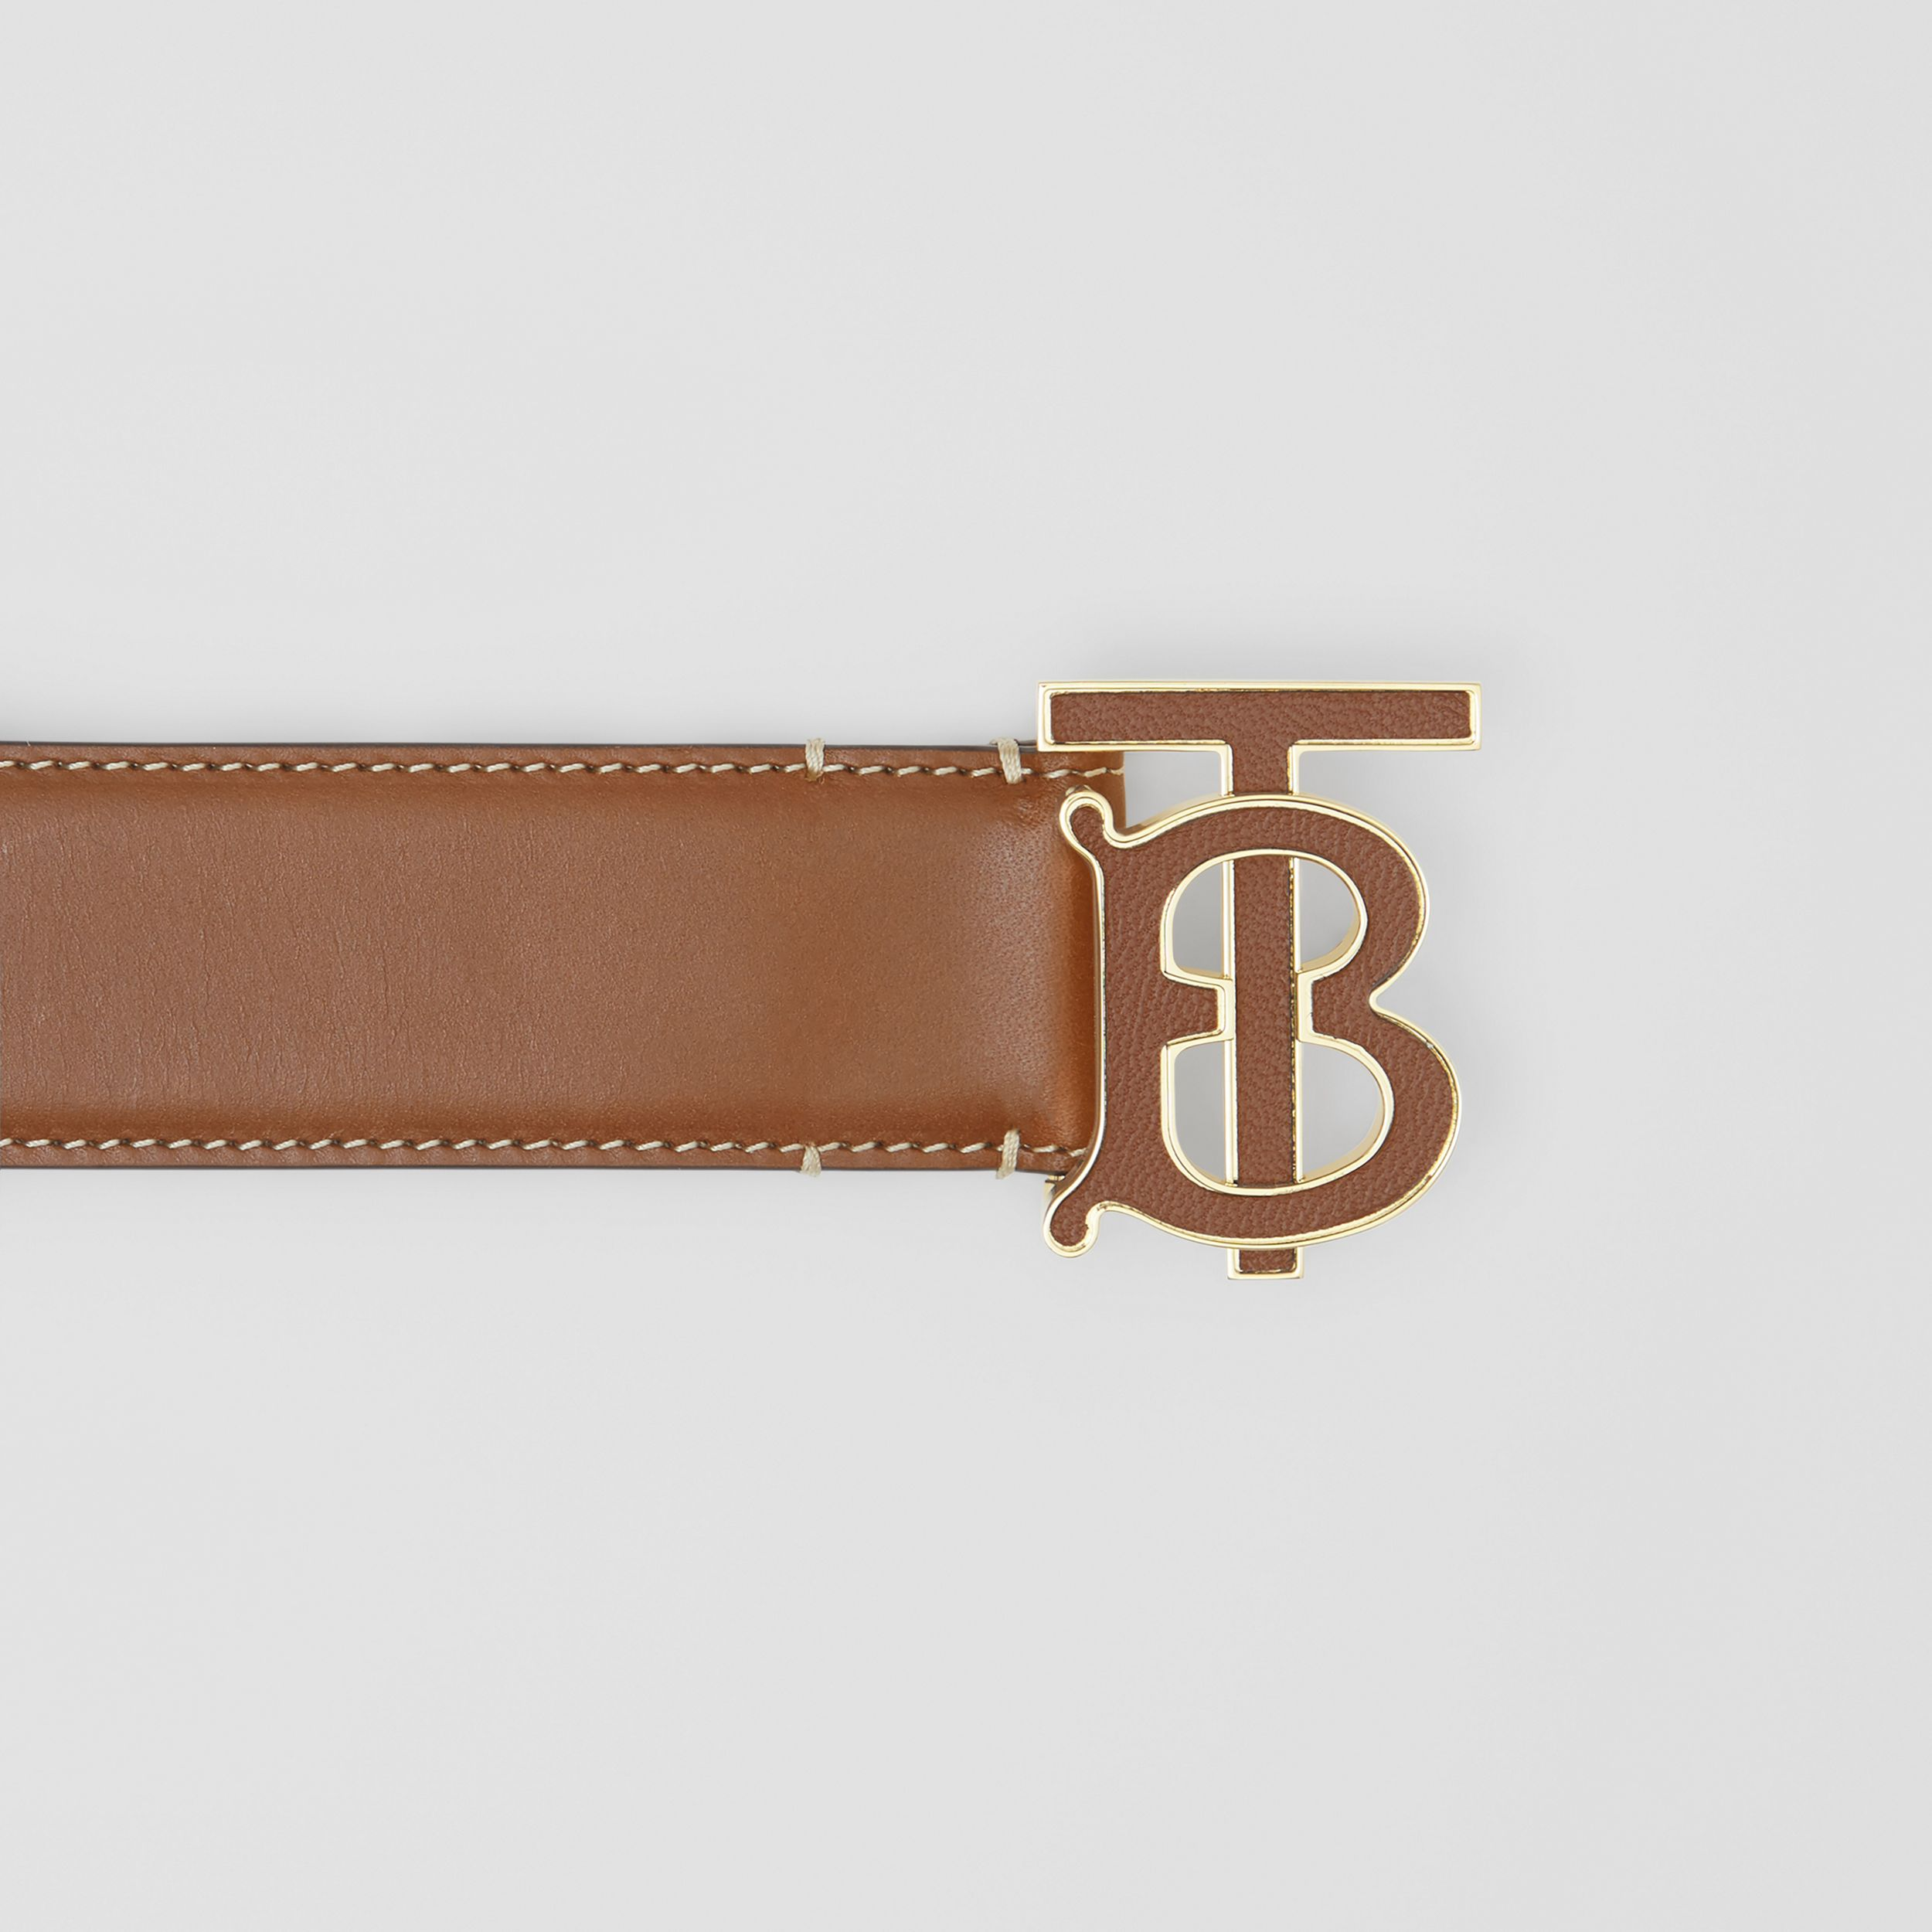 Monogram Motif Leather Belt in Tan | Burberry - 2